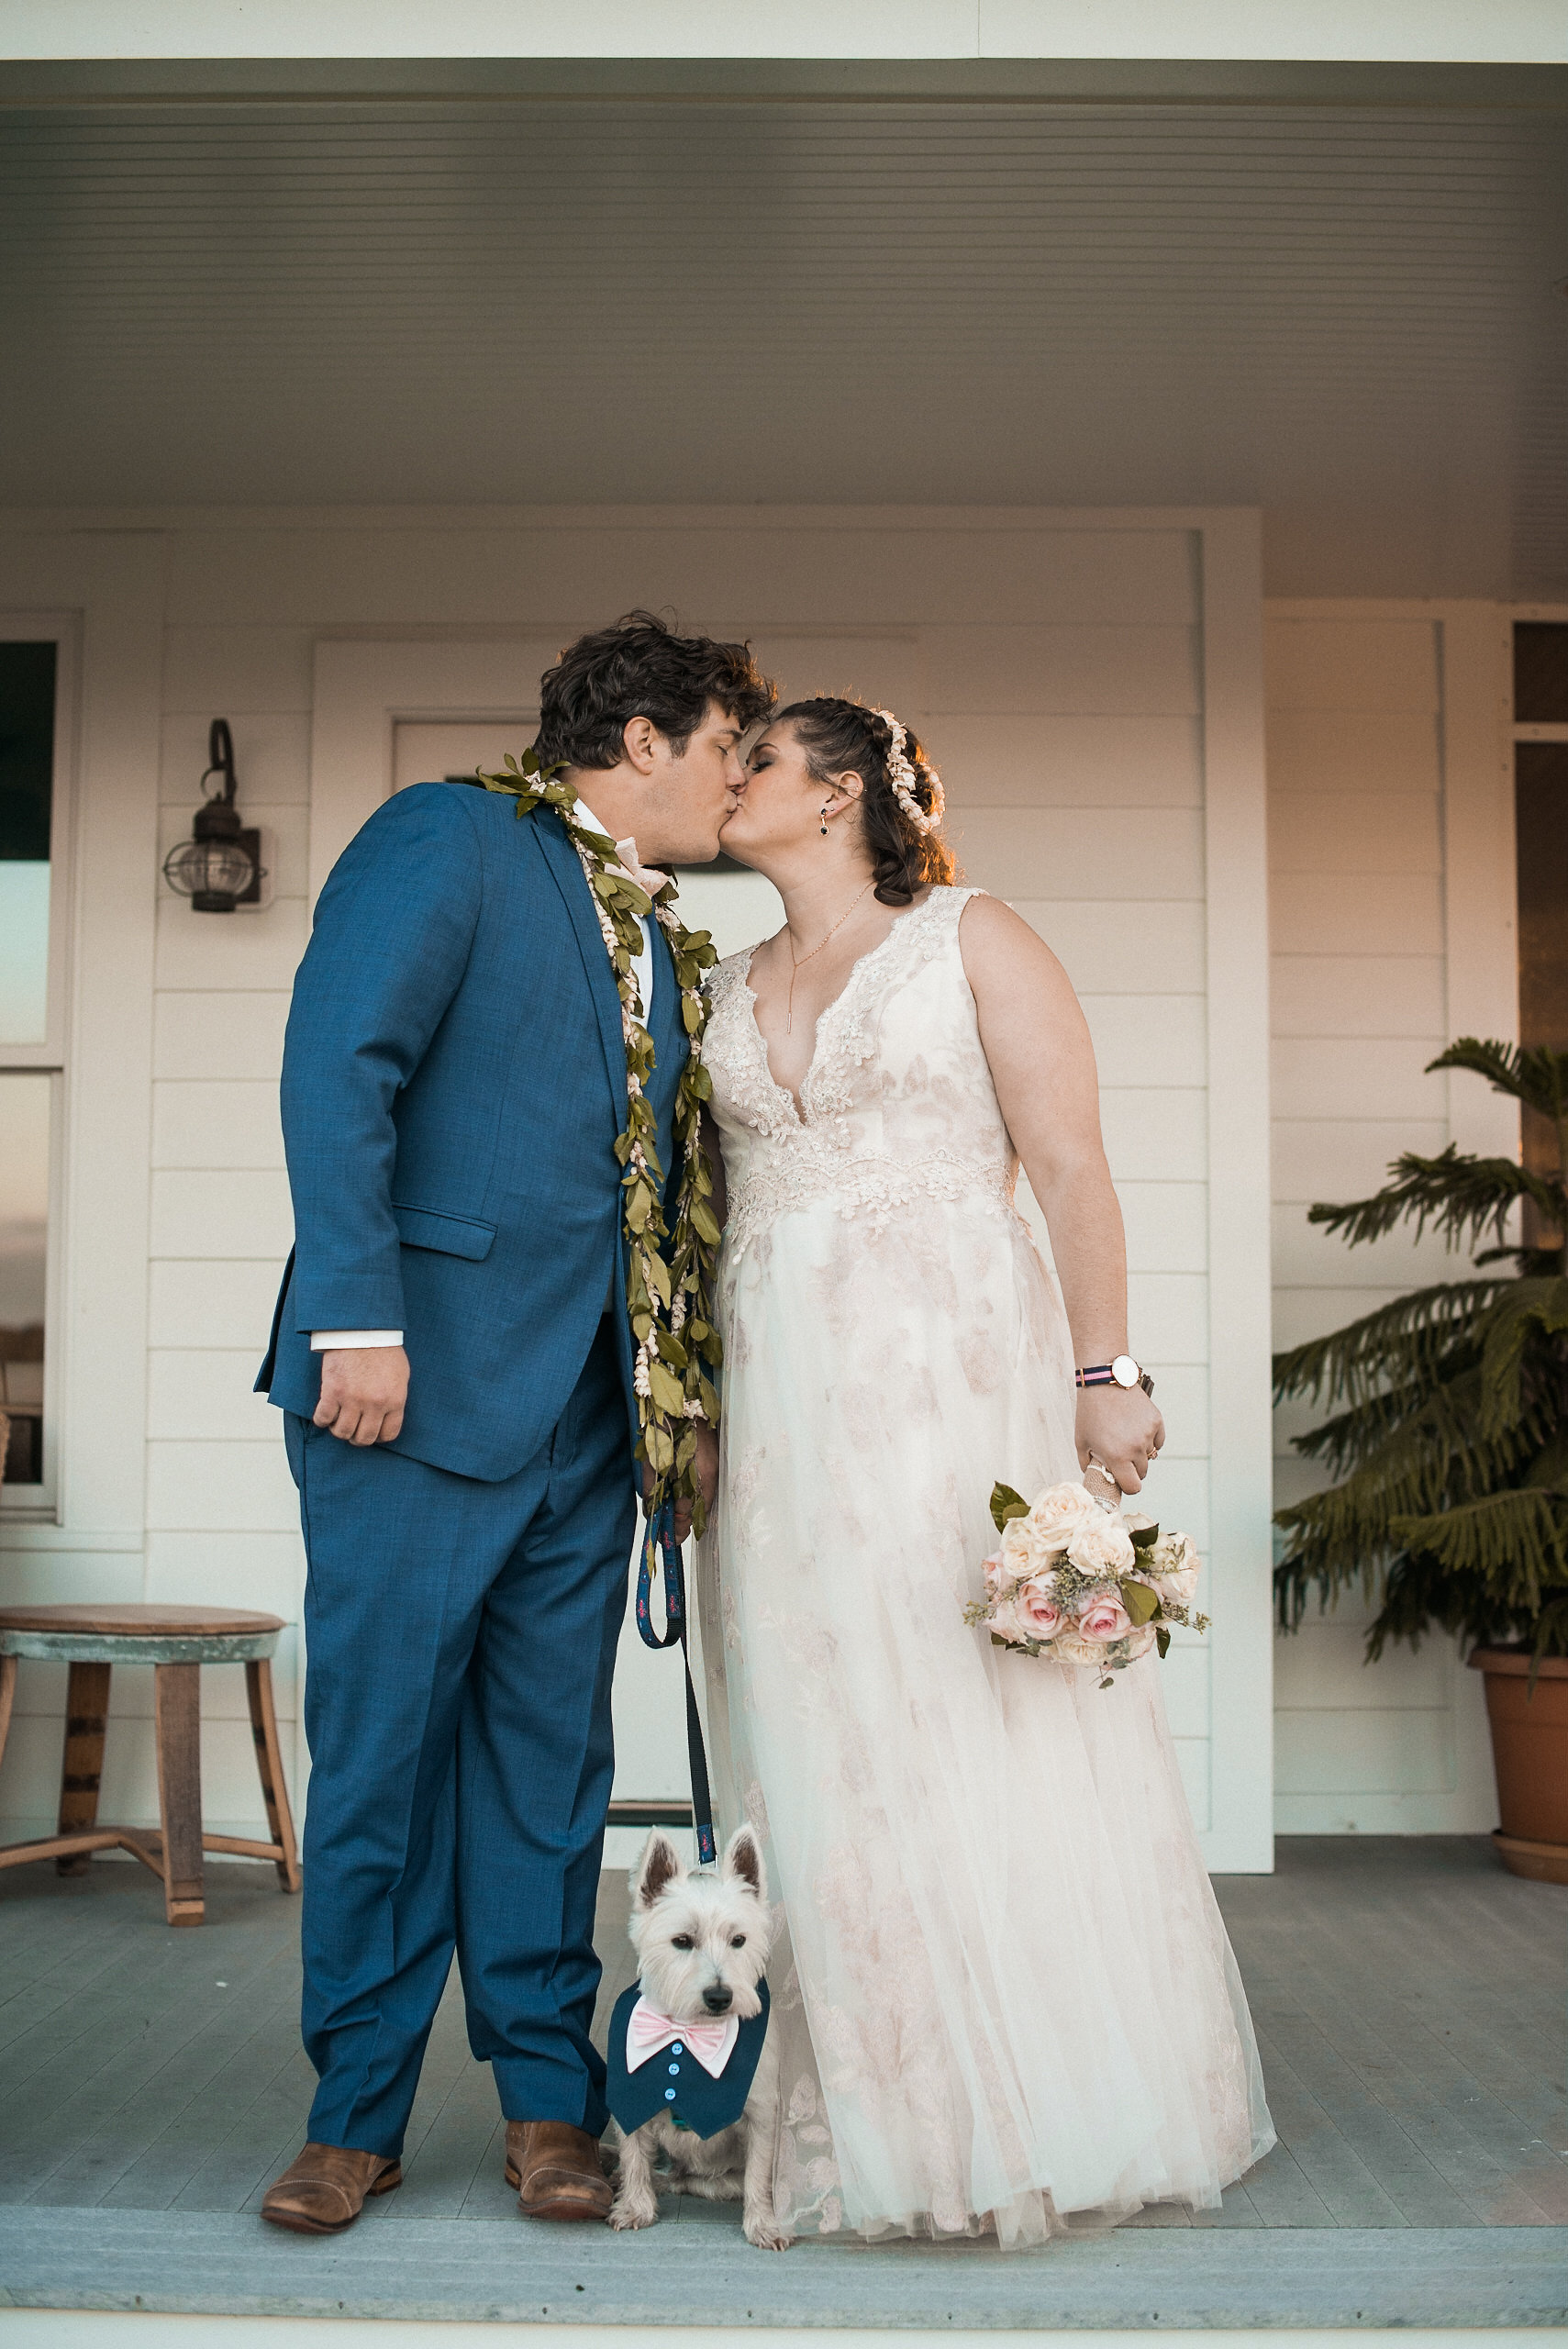 Bride and groom kissing with dog between